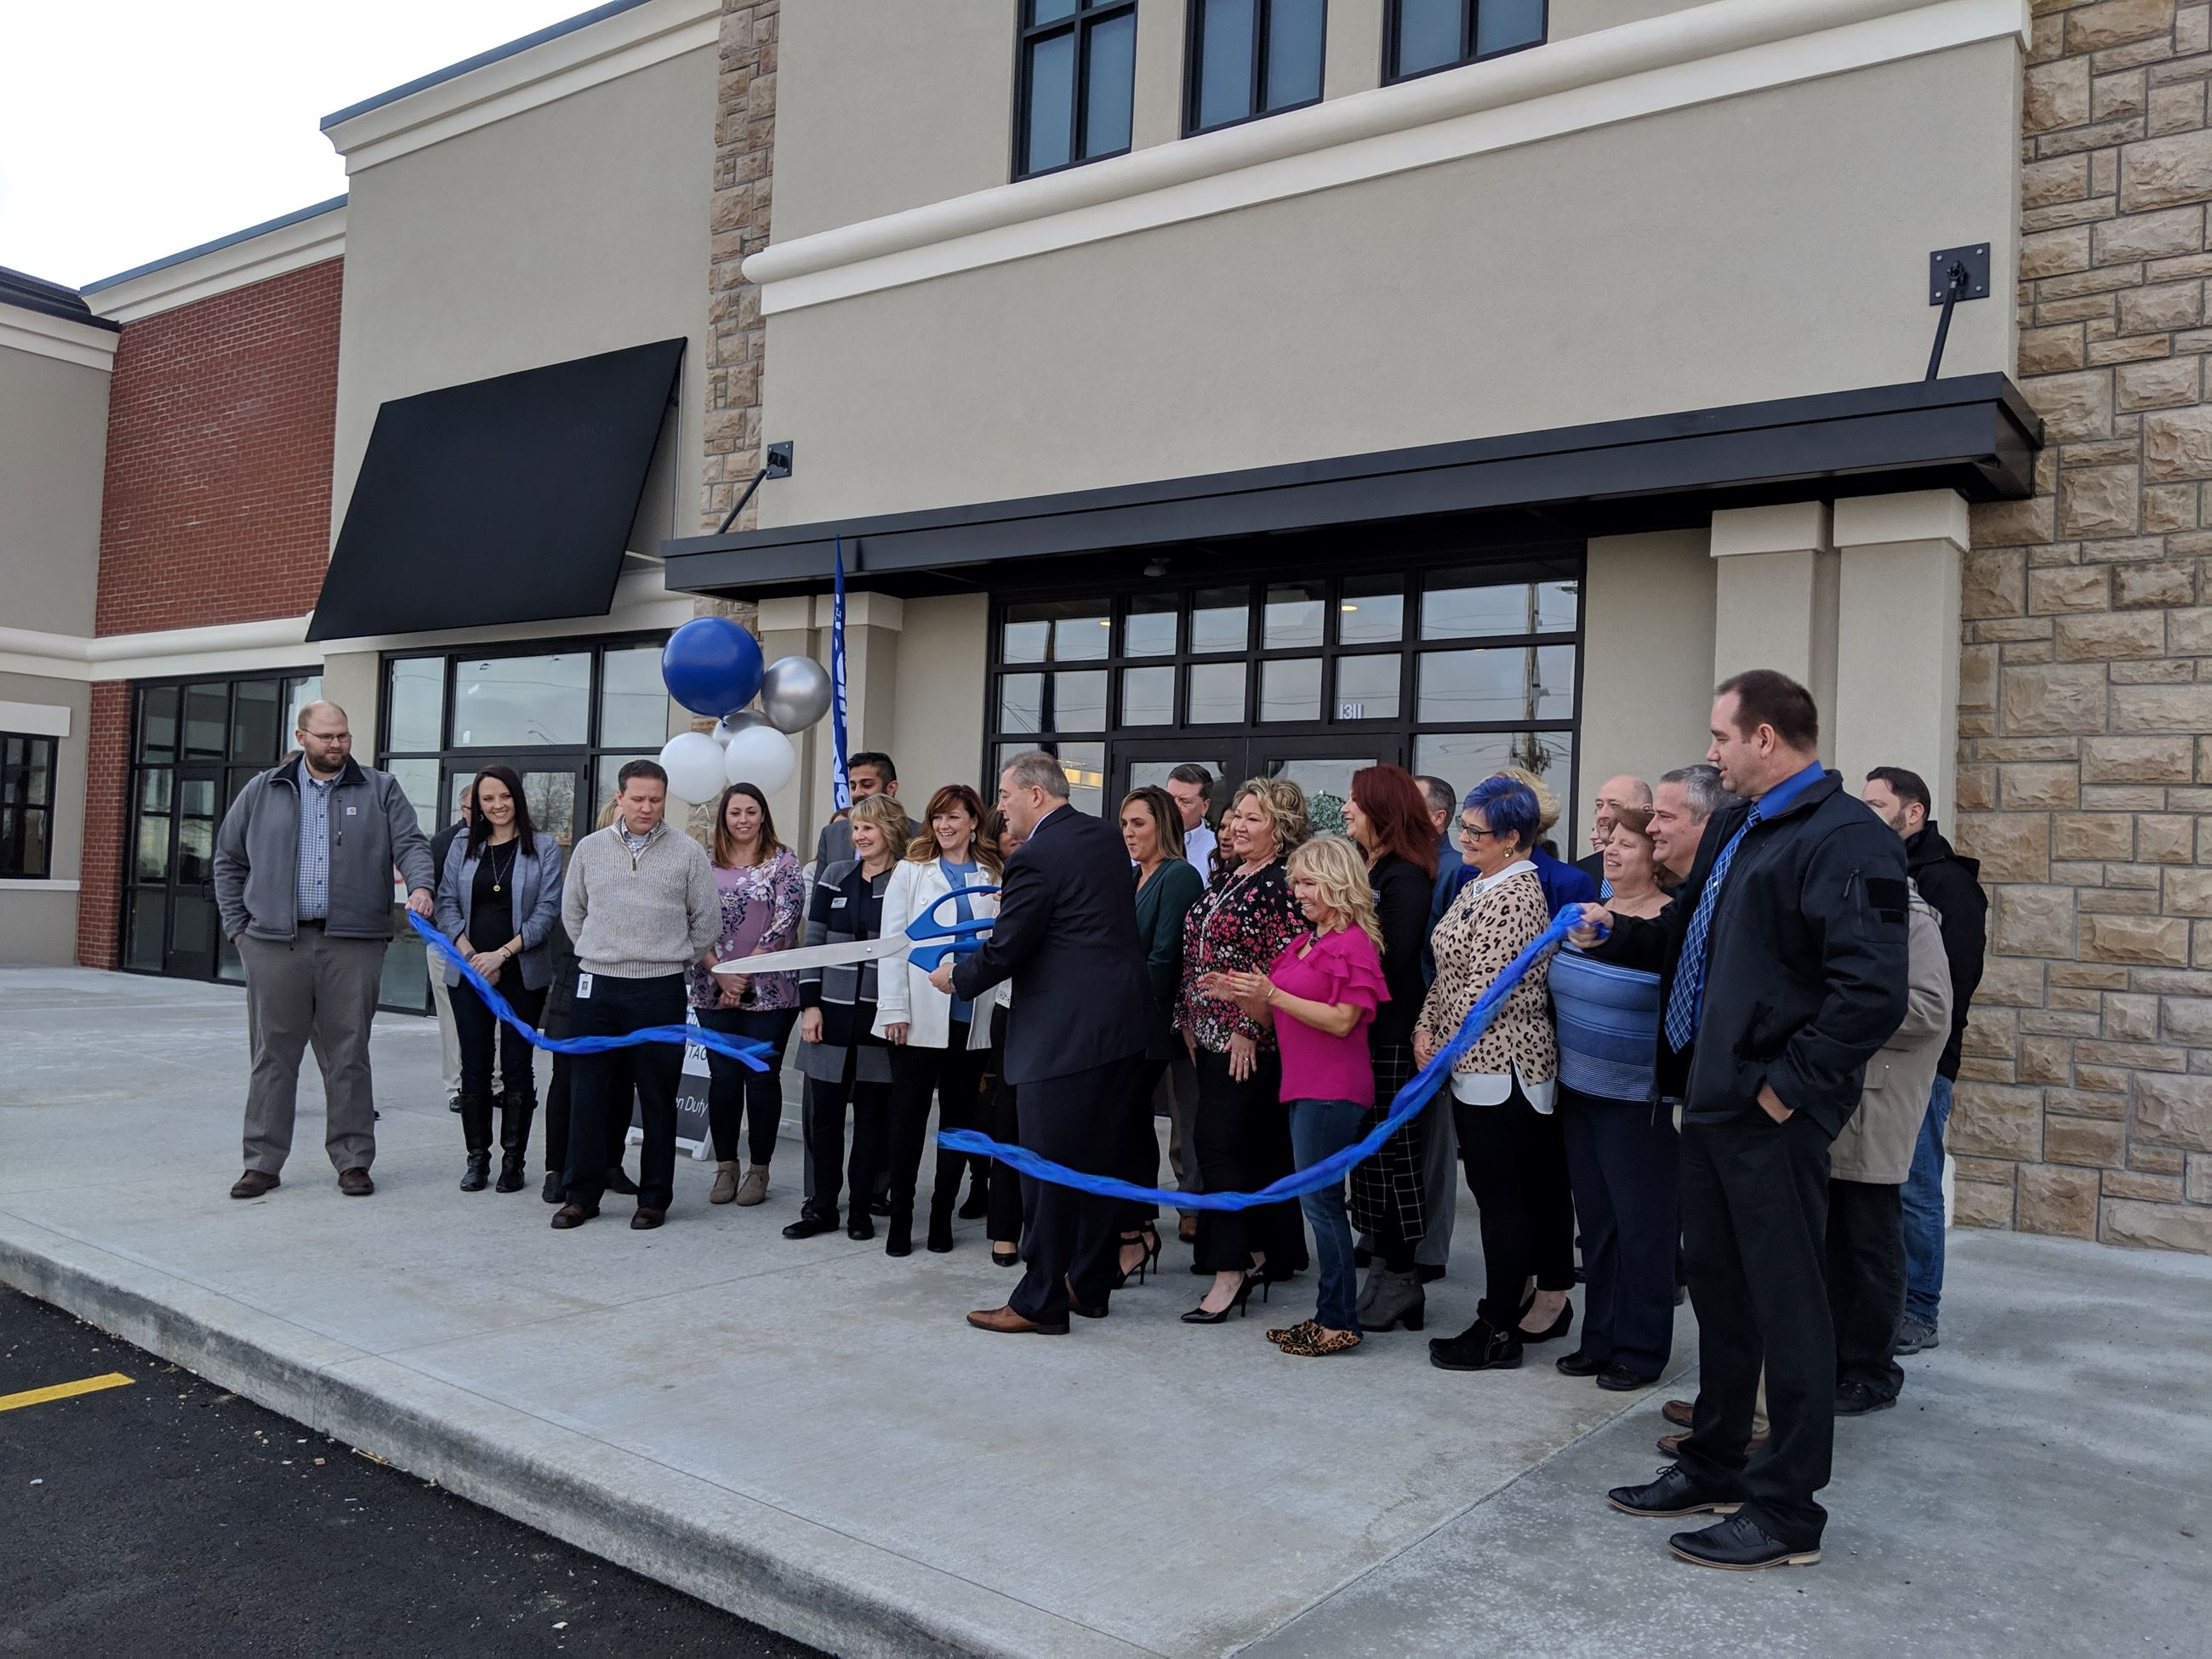 Picture of a crowd of people standing outside a stone building and cutting a blue ribbon as the ribb